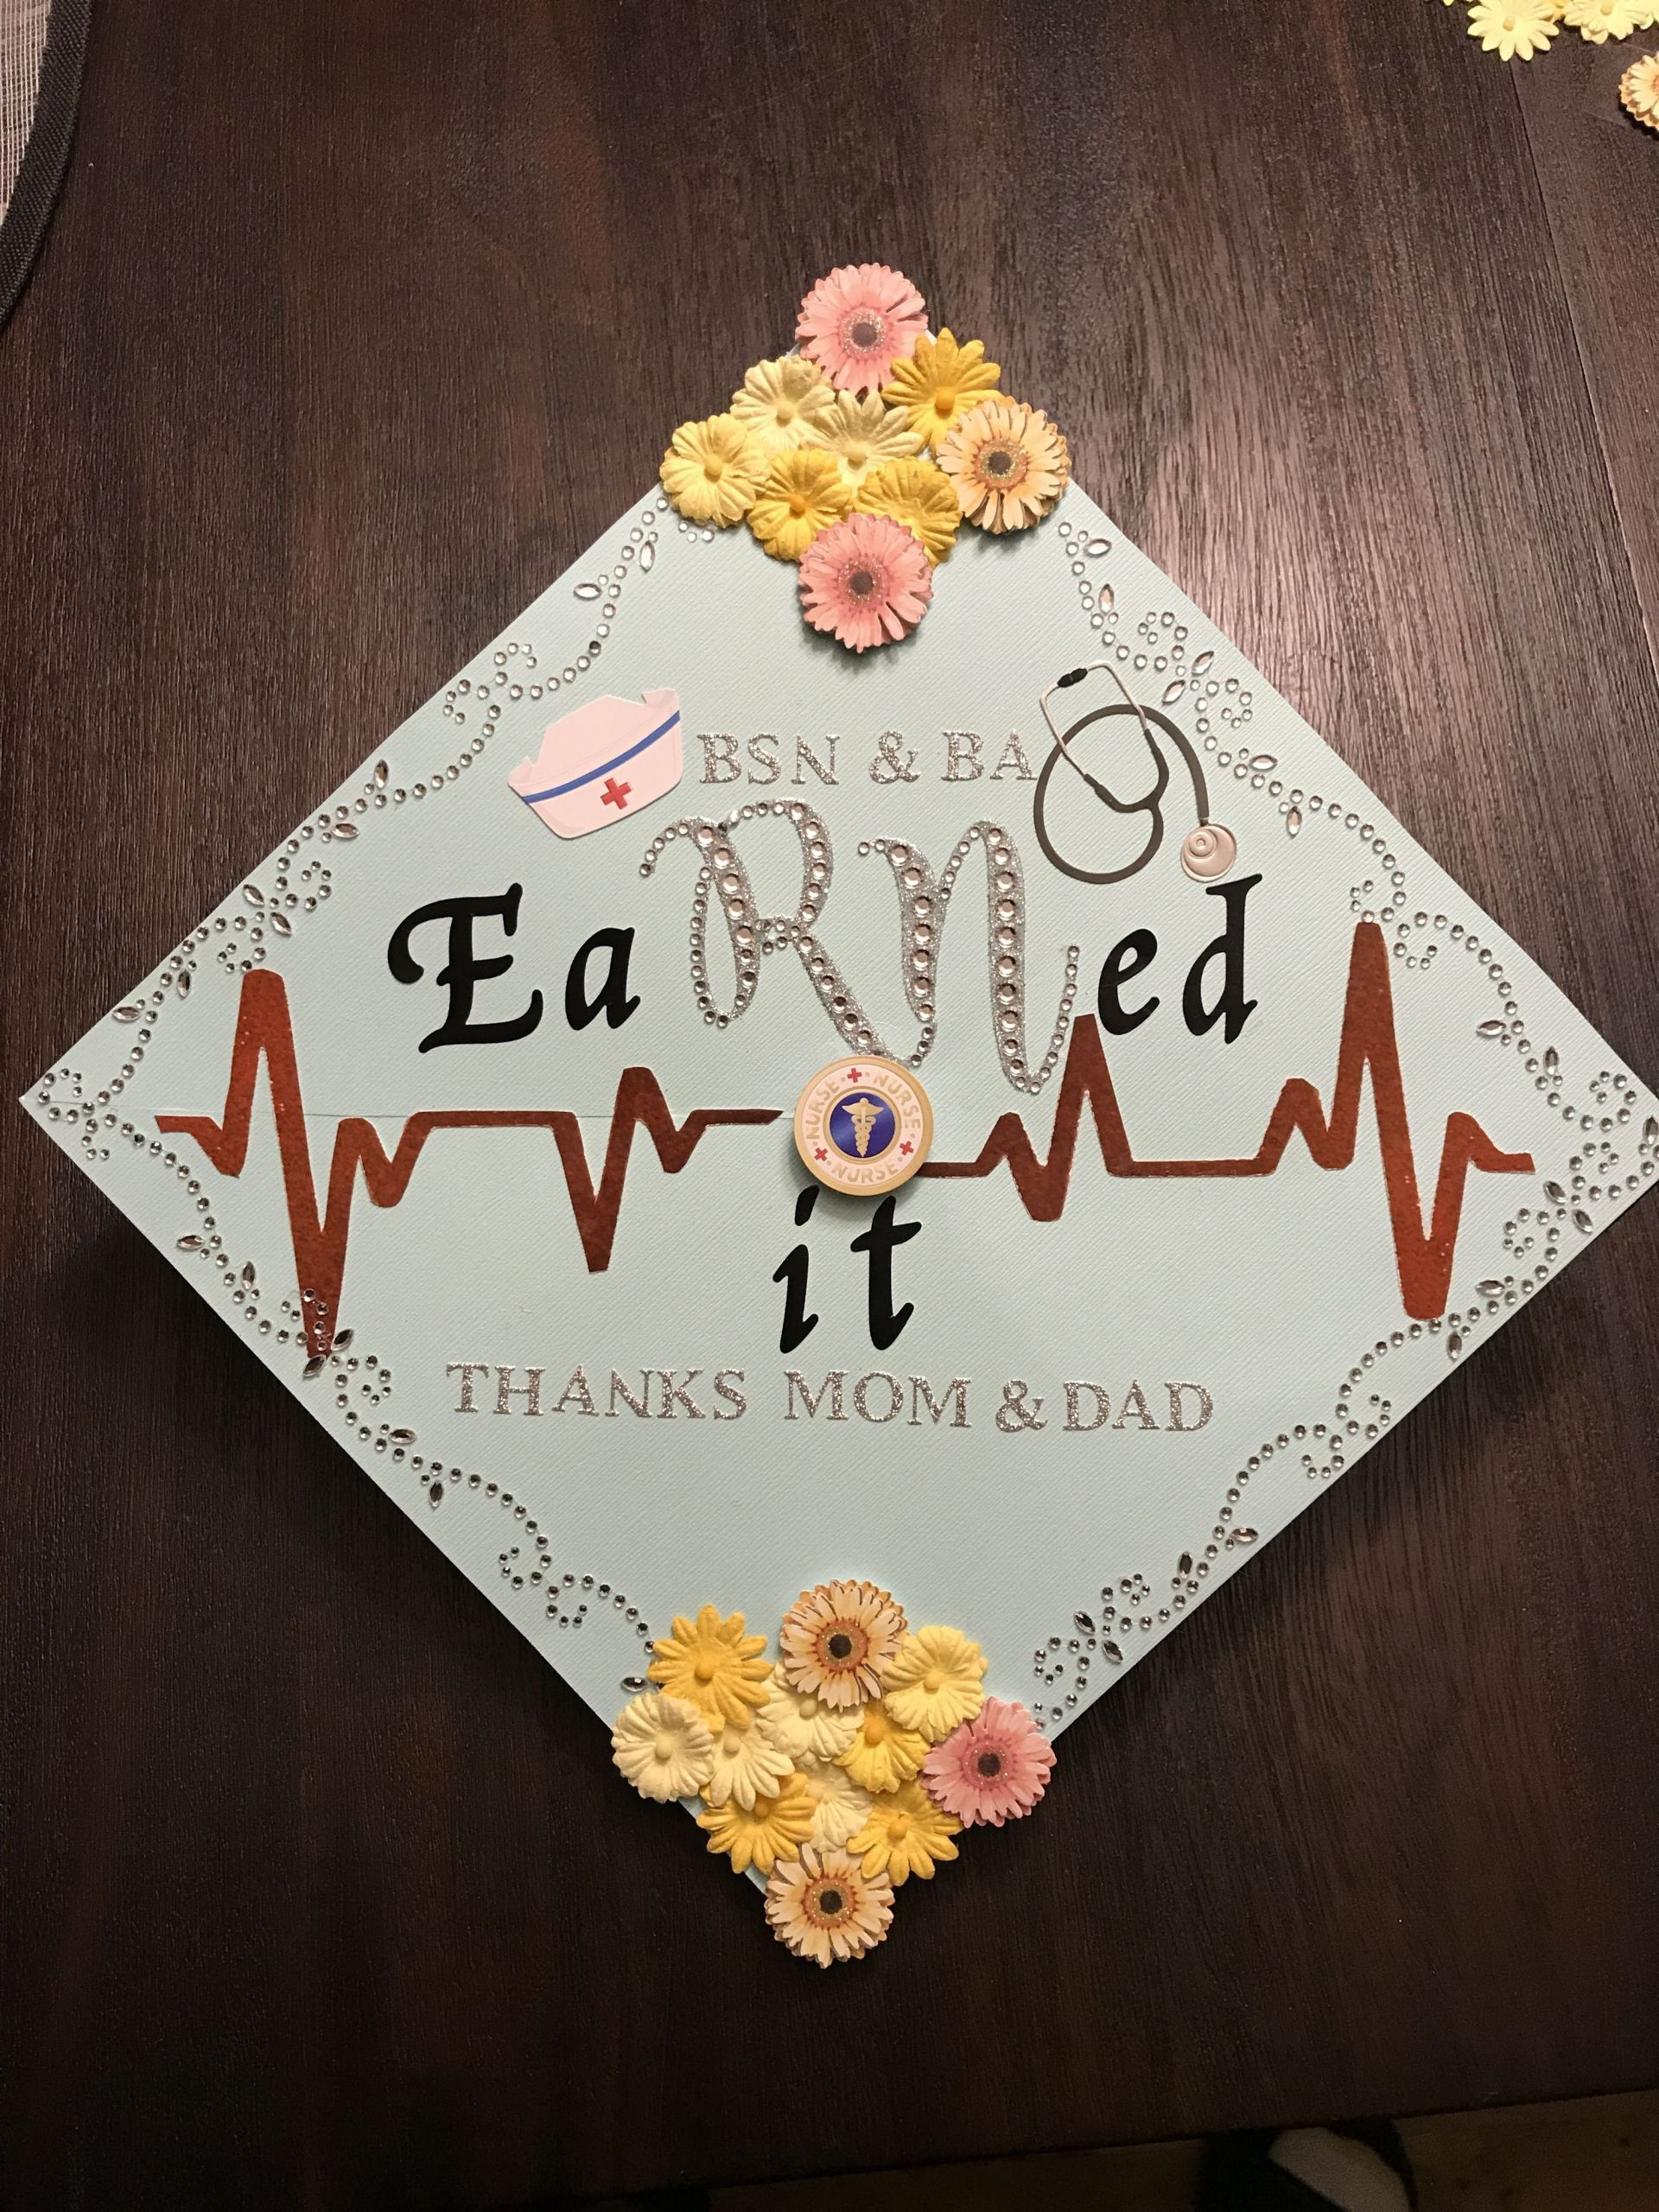 Graduation Gift Ideas For Daughter  10 Stylish Graduation Gift Ideas For Daughter 2019